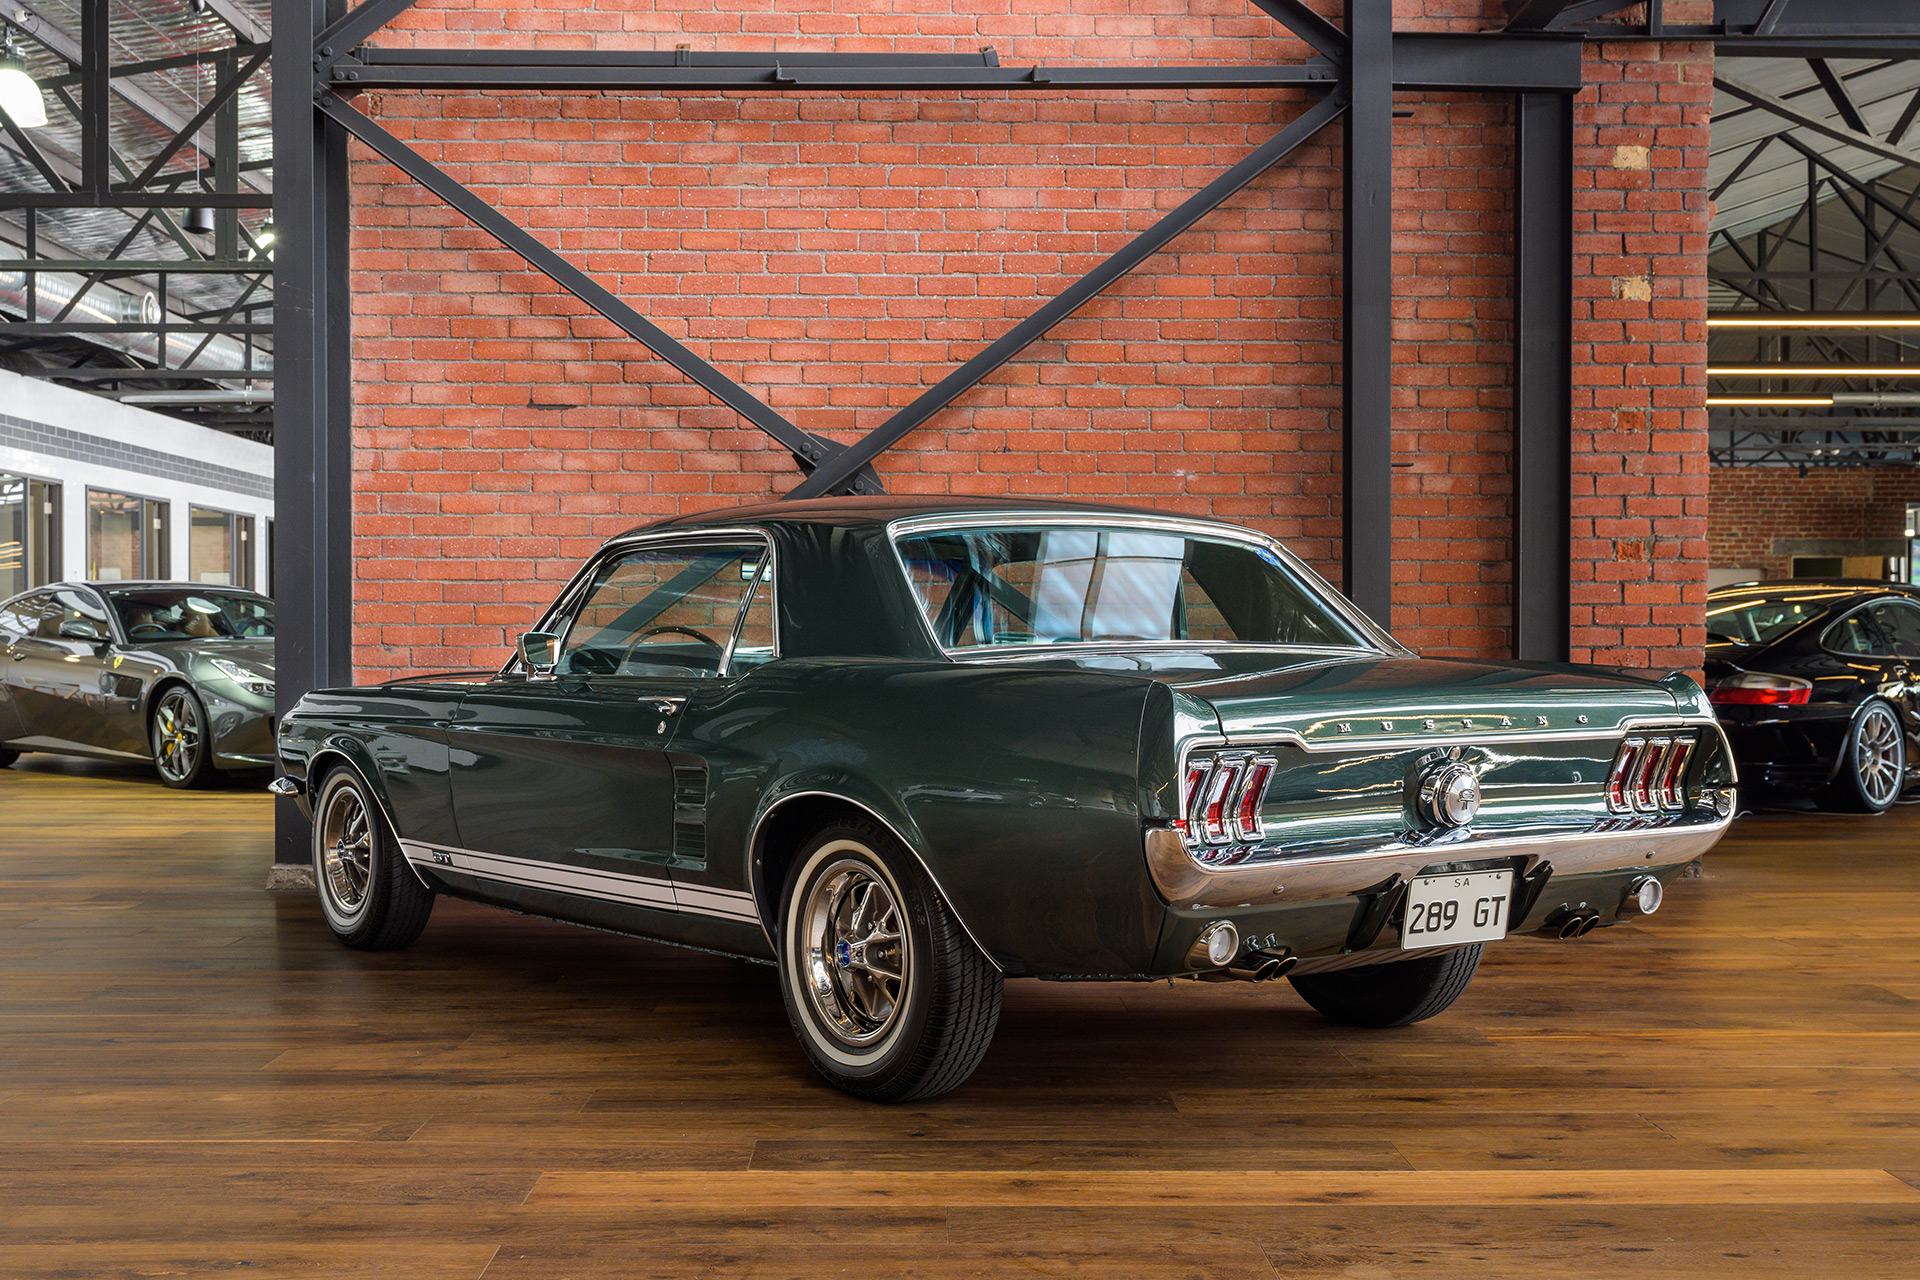 mustang 289 ford gt hardtop 1967 richmonds green australia classic adelaide